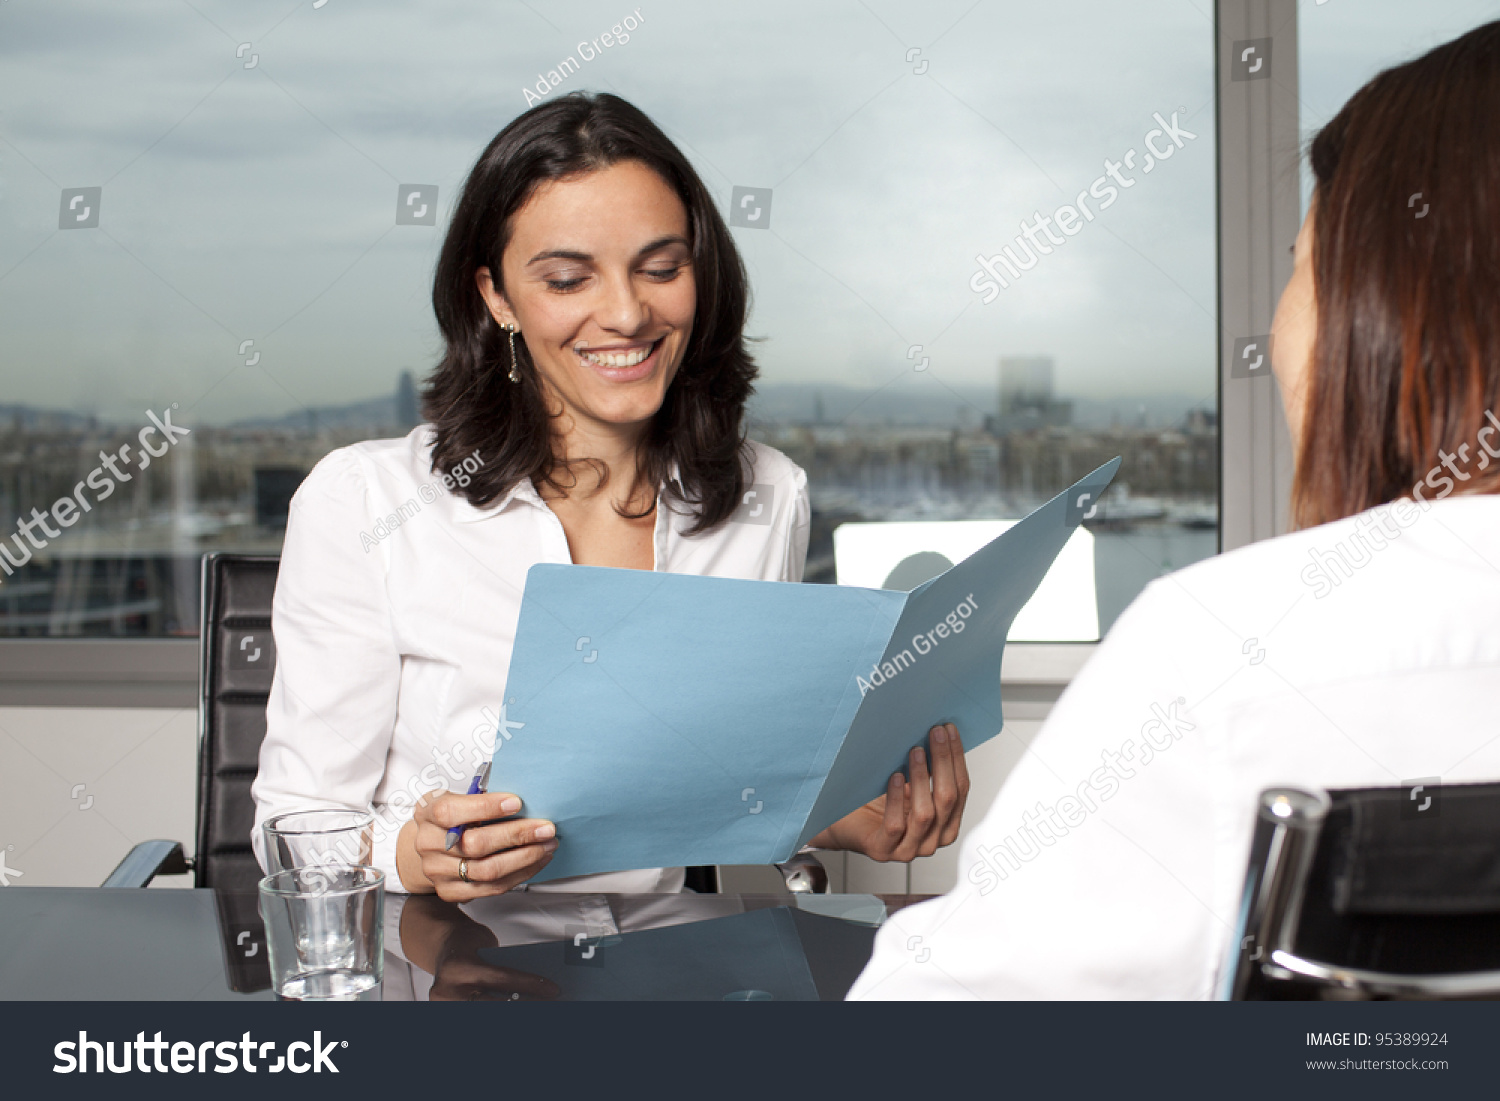 recruiter checking the cv during job interview stock photo save to a lightbox